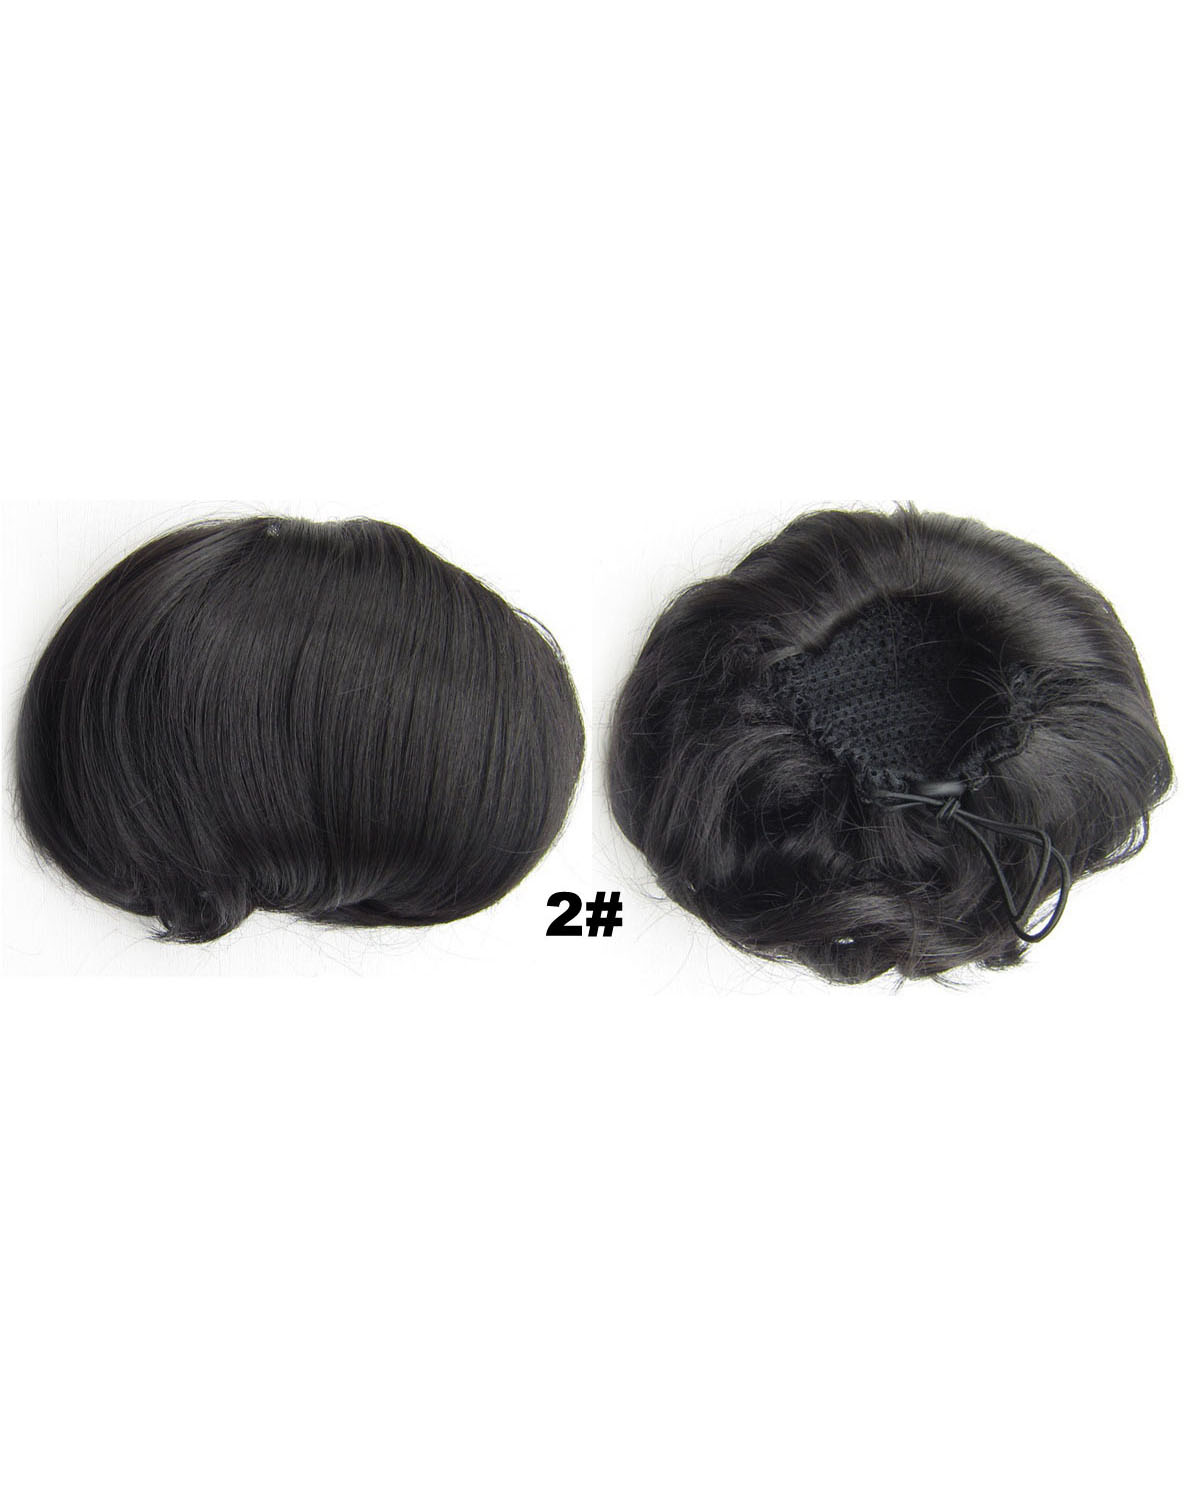 Ladies Bright Straight Short Hair Buns Drawstring Synthetic Hair Extension Bride Scrunchies 2#